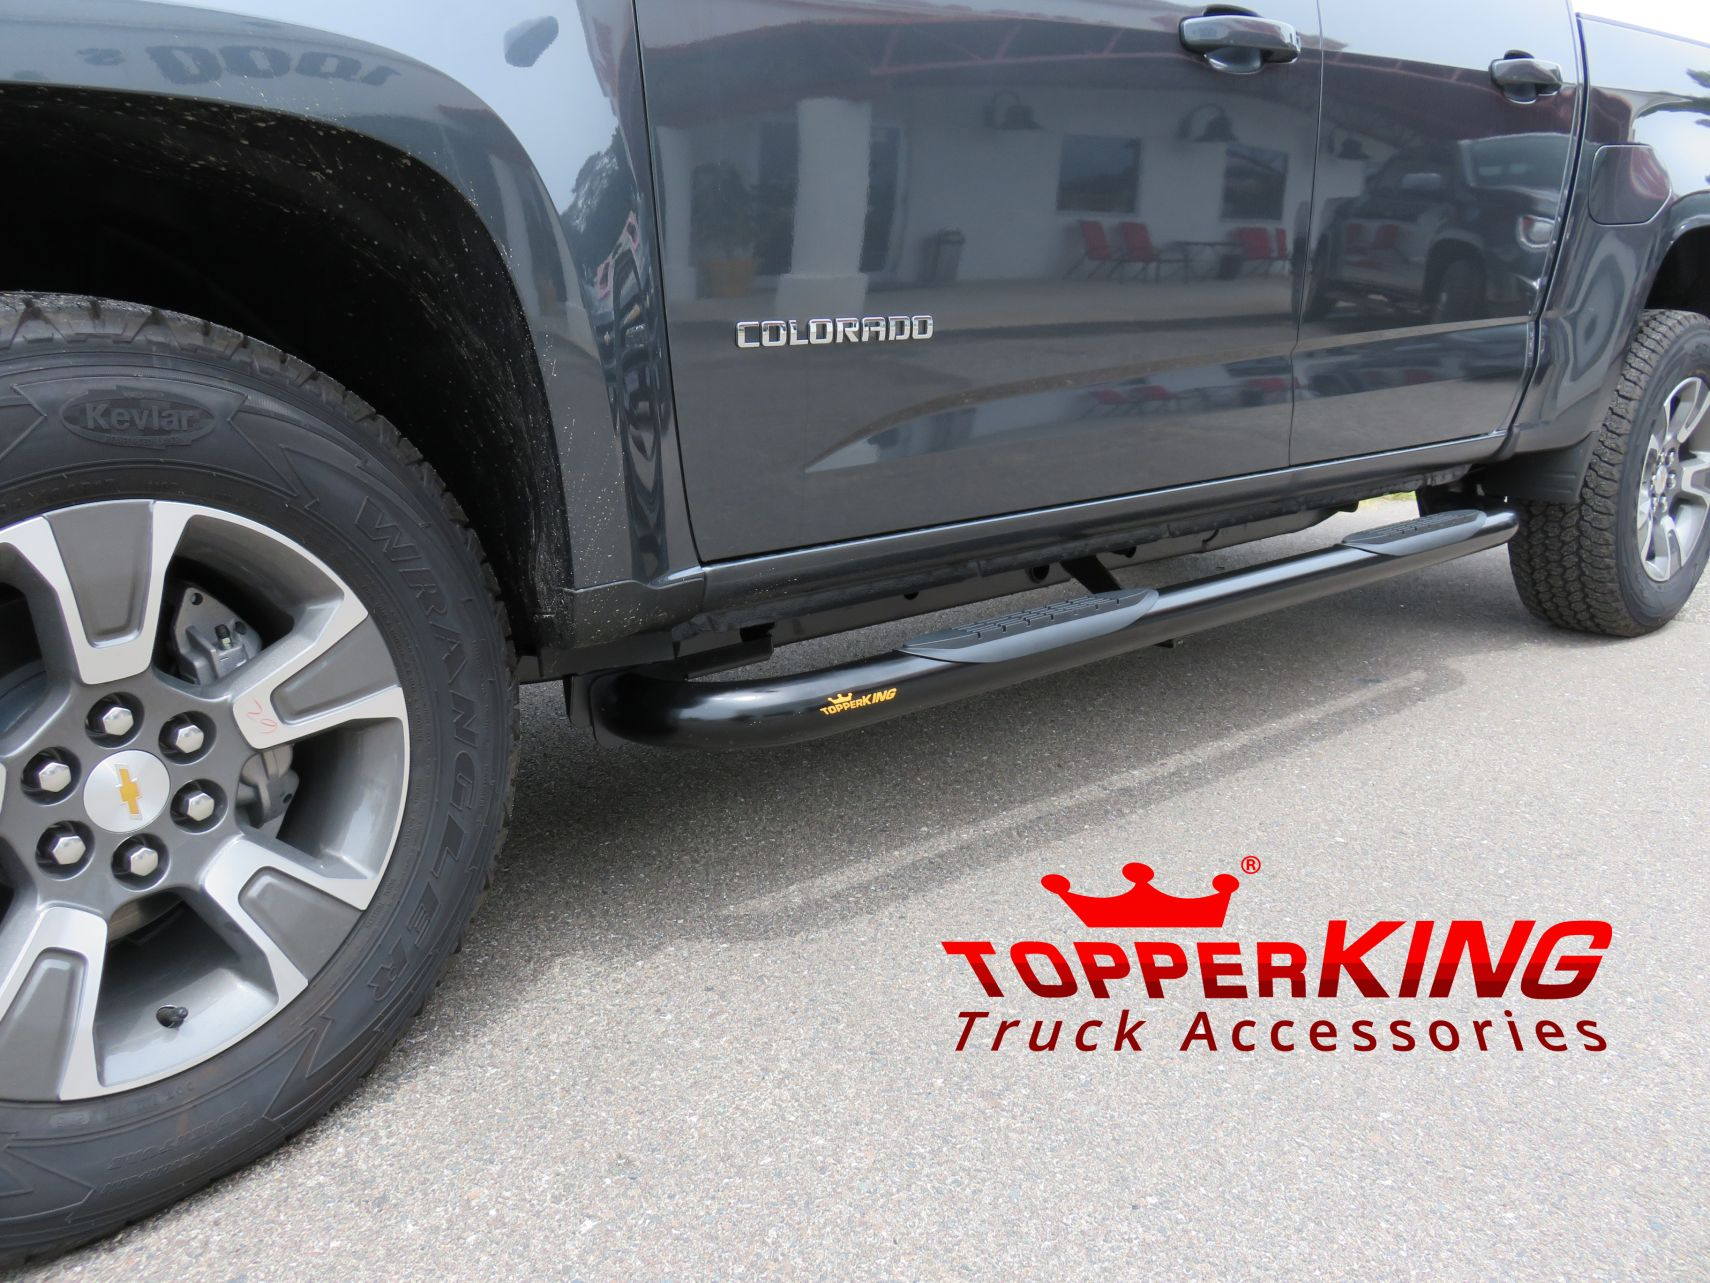 Chevy Colorado Black 3 inch Nerf Bars by TopperKING in Brandon, FL 813-689-2449 Call today to start on your truck!